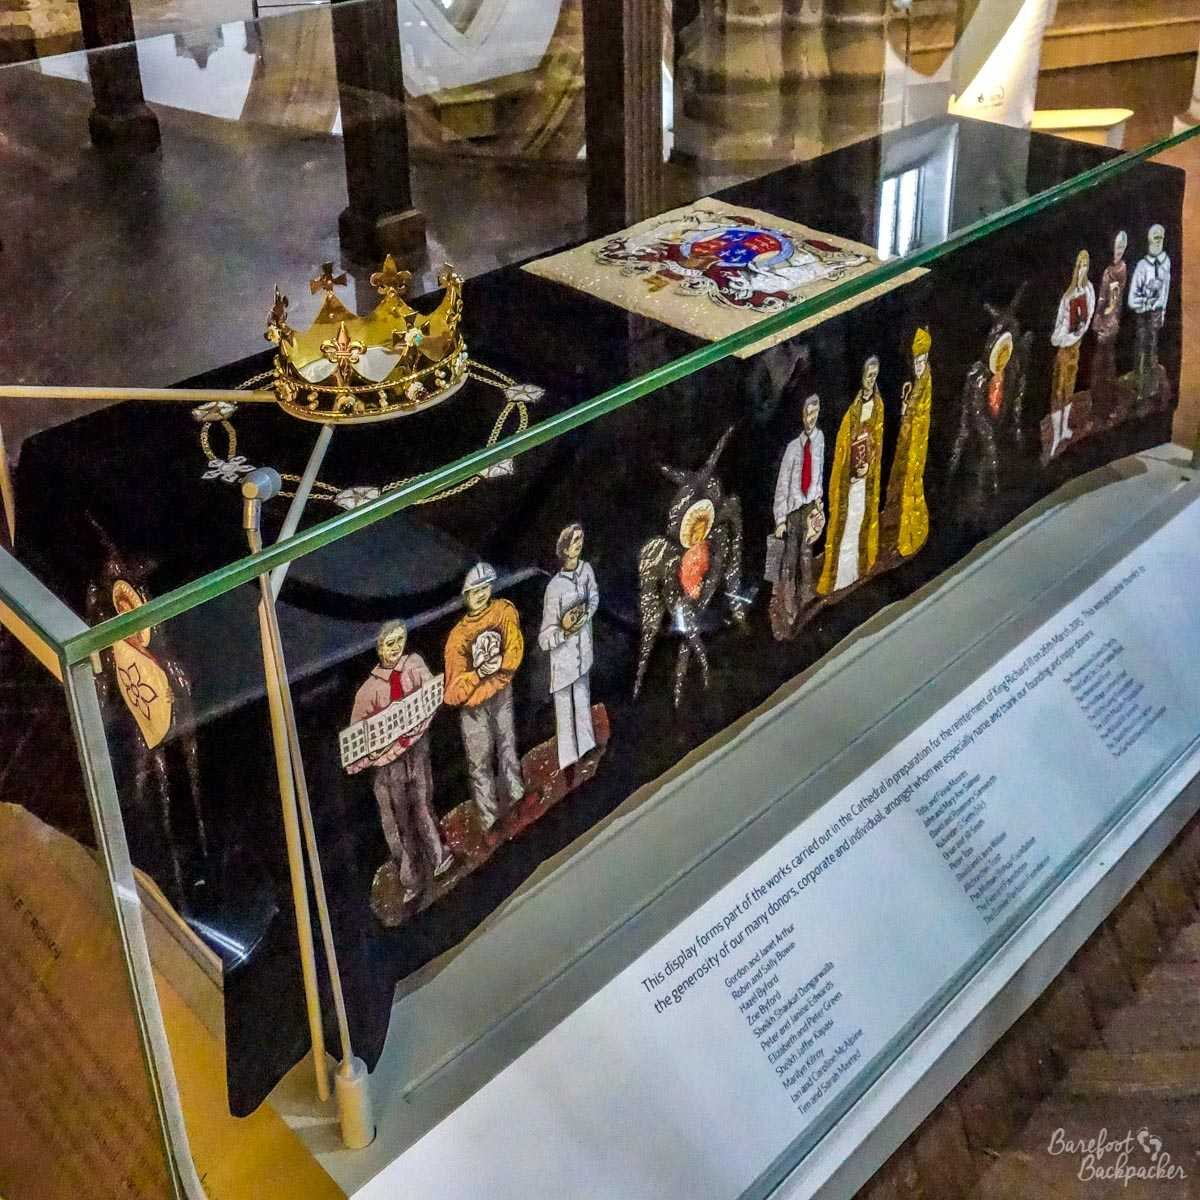 Memorial to King Richard III inside the cathedral, and replica of his crown.